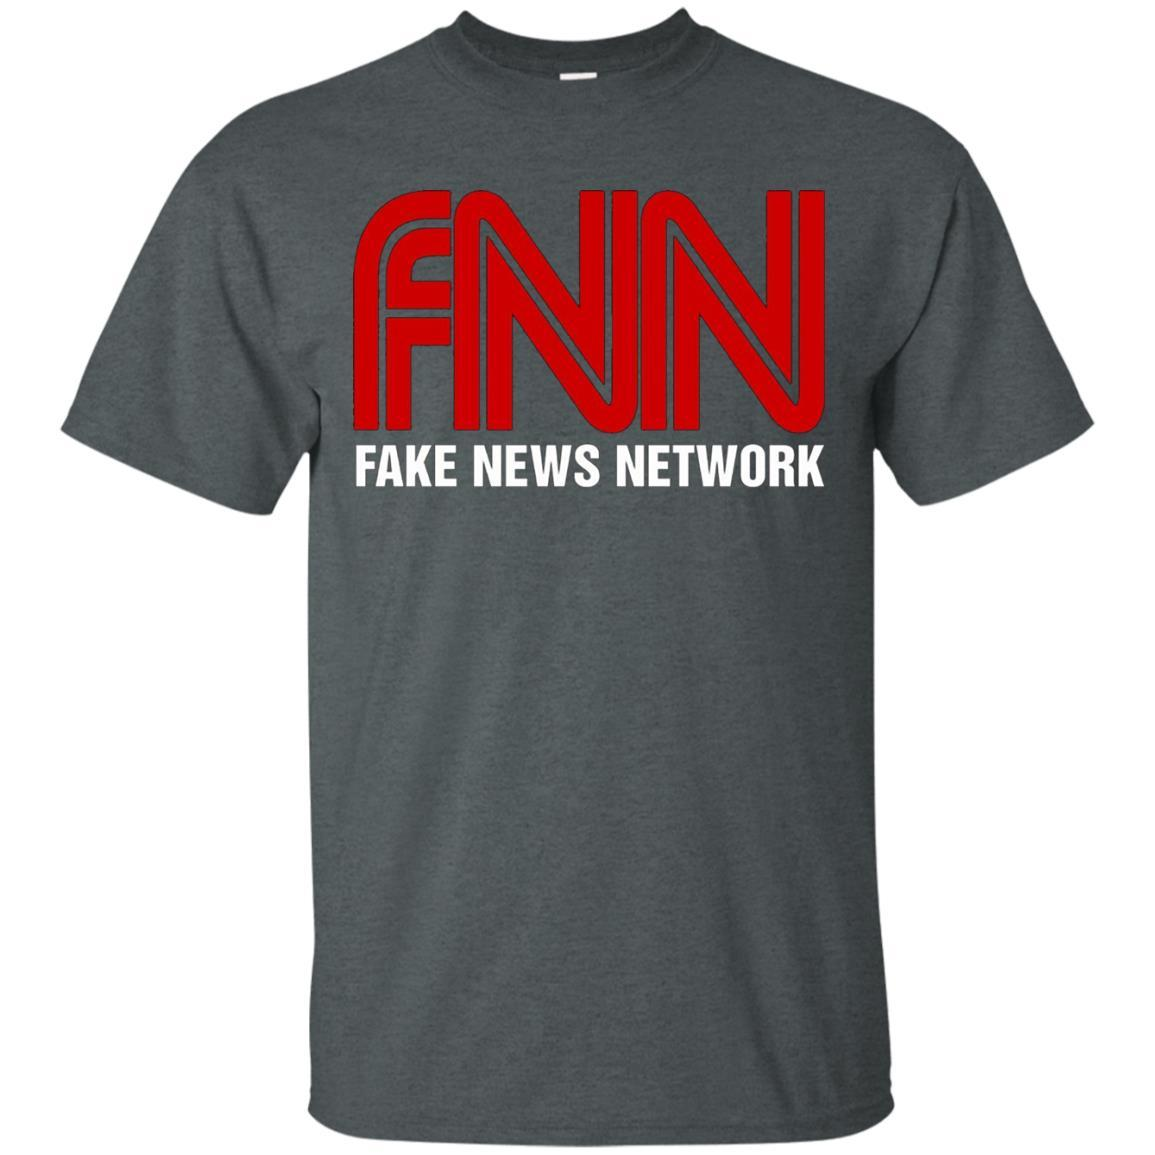 Fake News Network T-Shirt - Funny FNN Logo Humor Quote Tee Dark Heather / 5XL